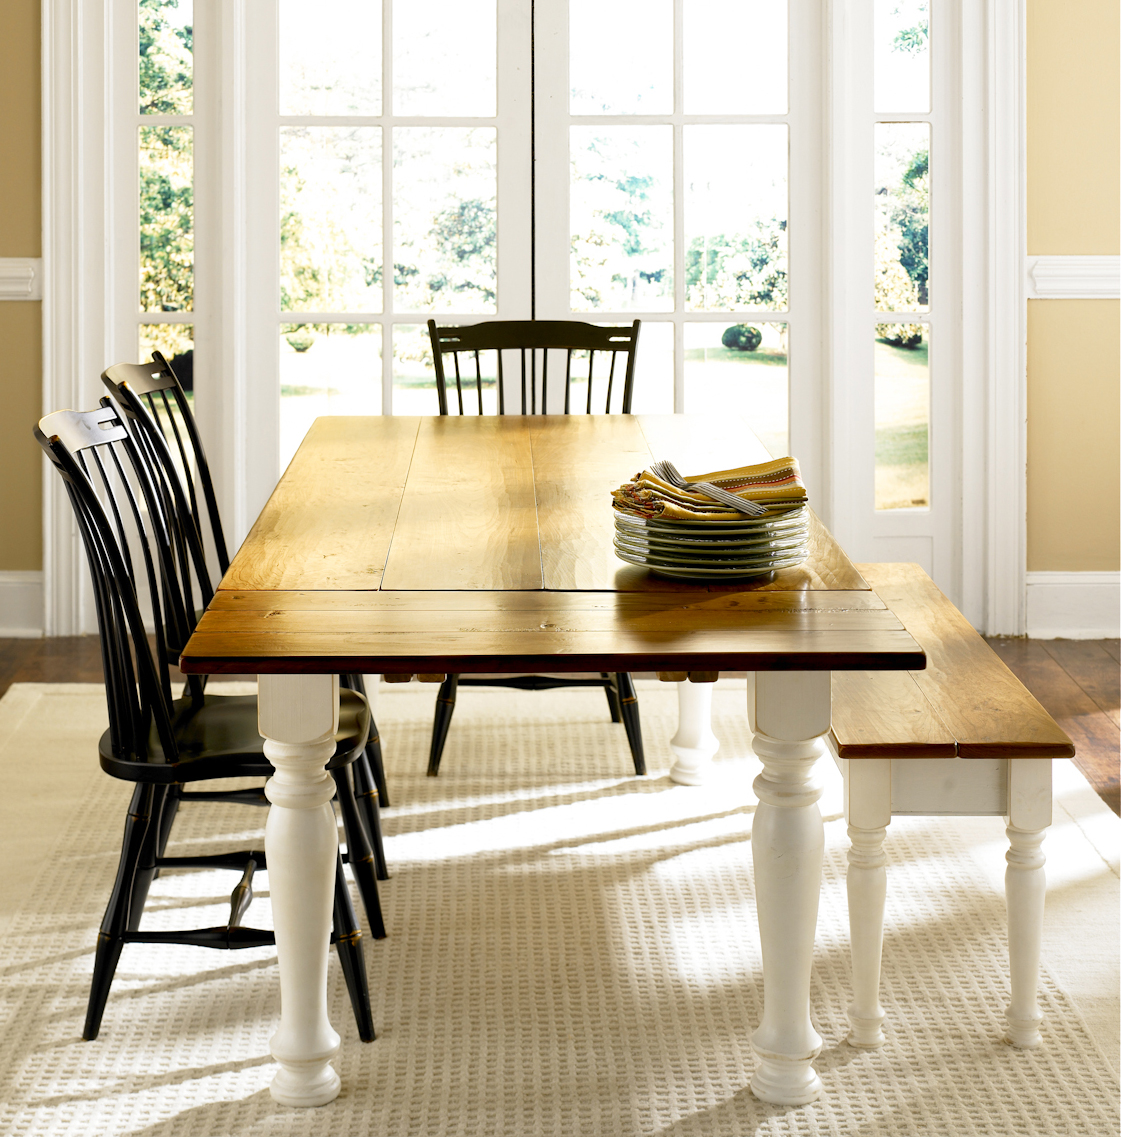 Classic Cottage Dining Table for Sale - Cottage & Bungalow